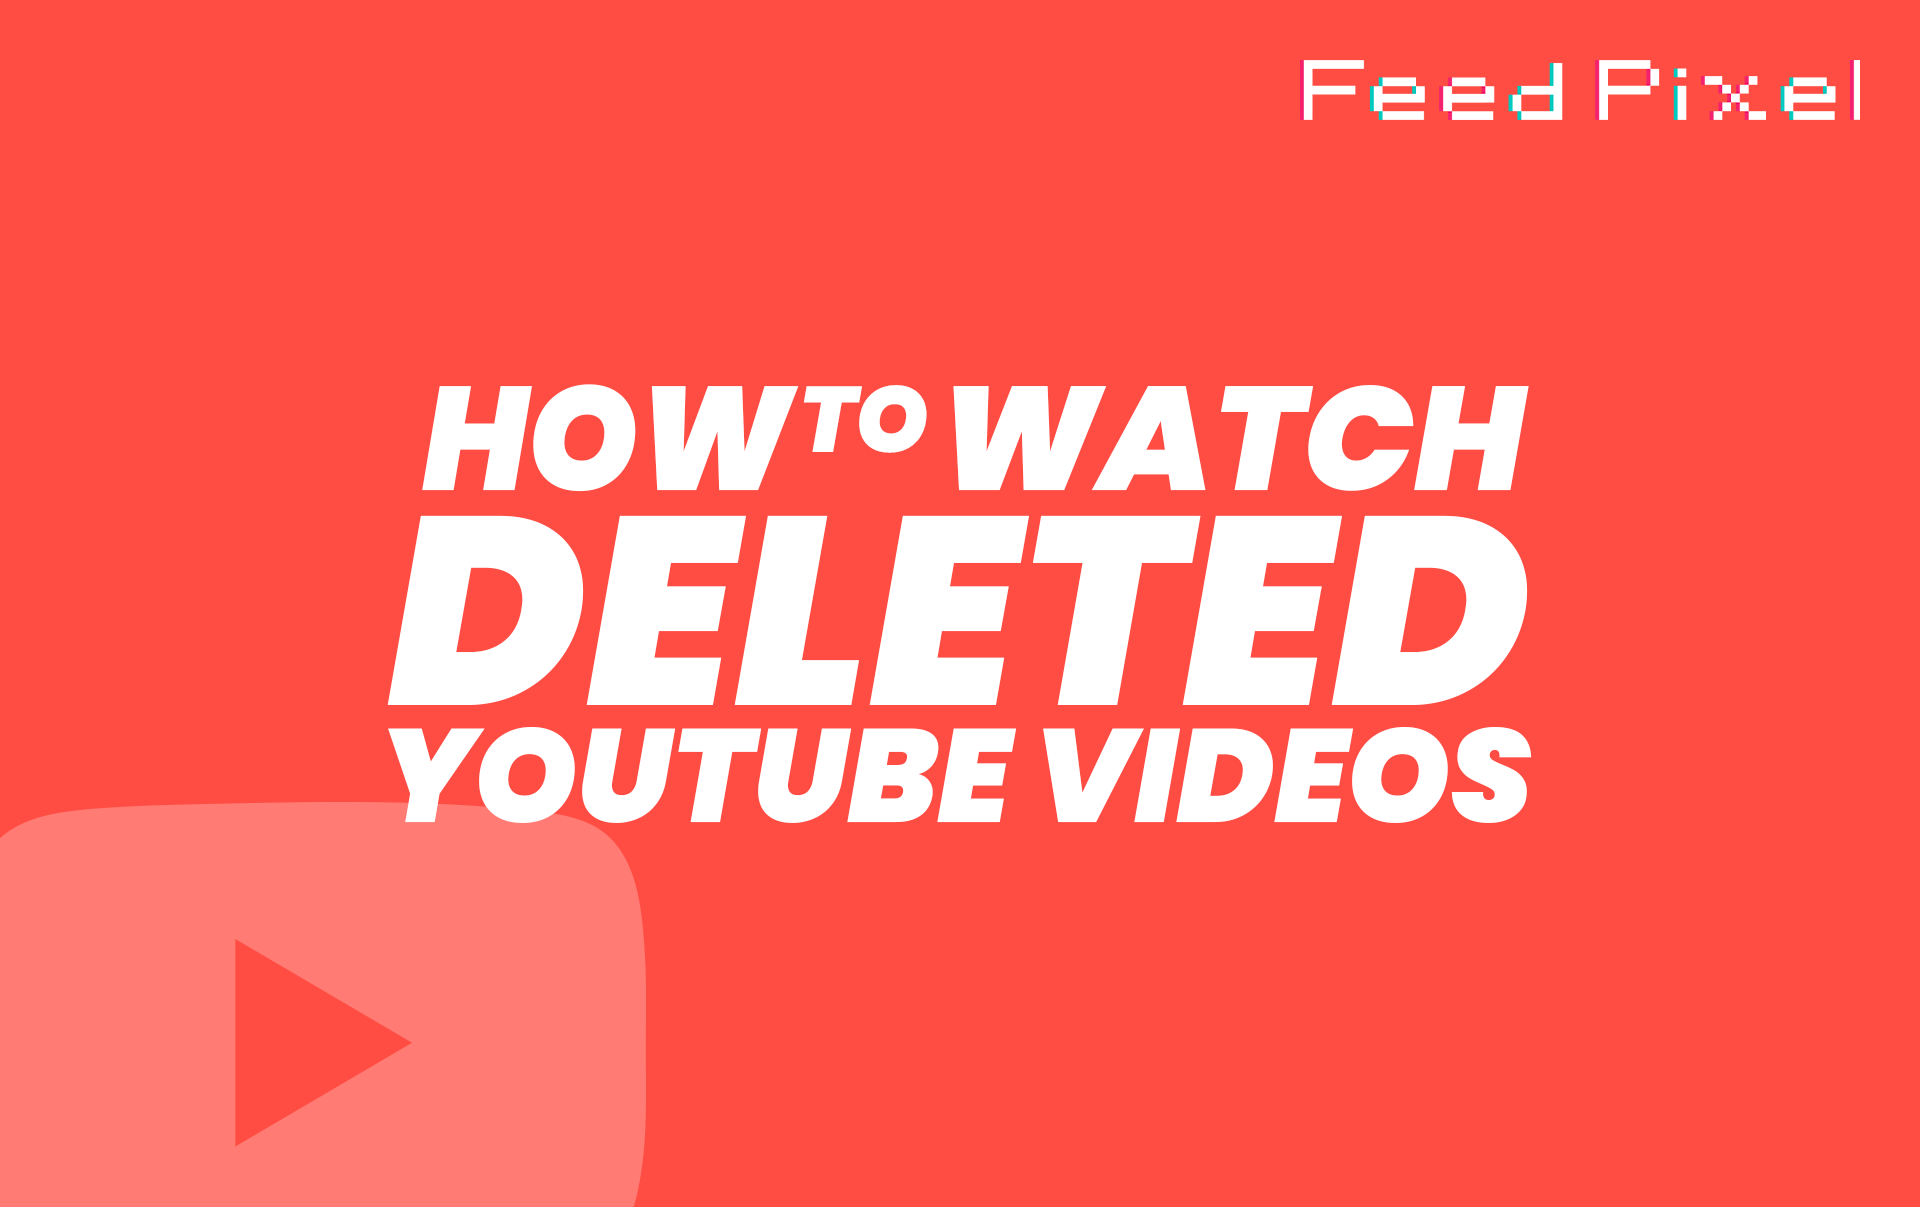 How To Watch Deleted YouTube Videos?